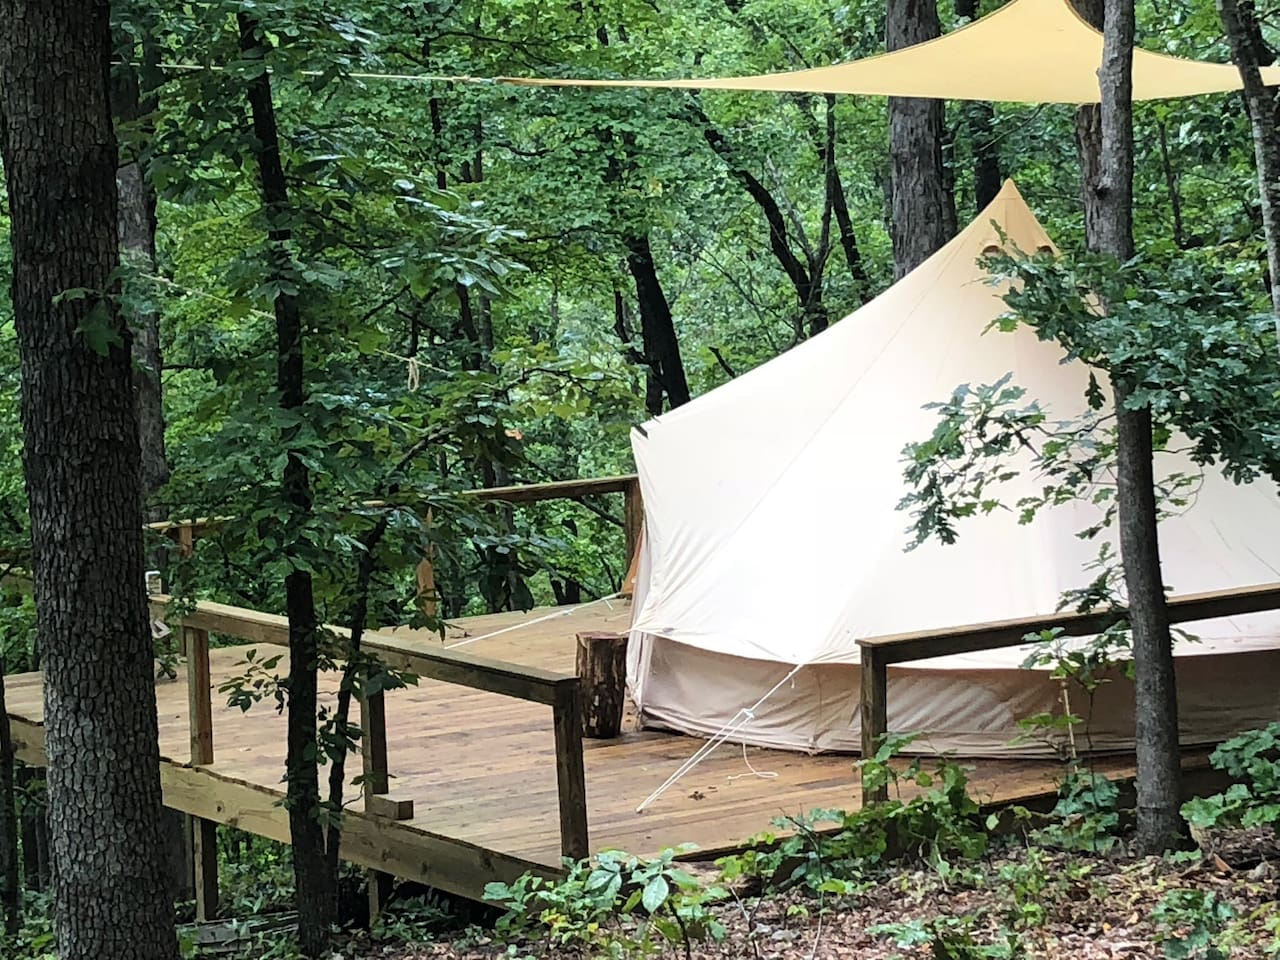 This Yurt is in a great location on the edge Mark Twain National forest. It is surround by hundreds of acres of woodlands in the Ozark Mountains.